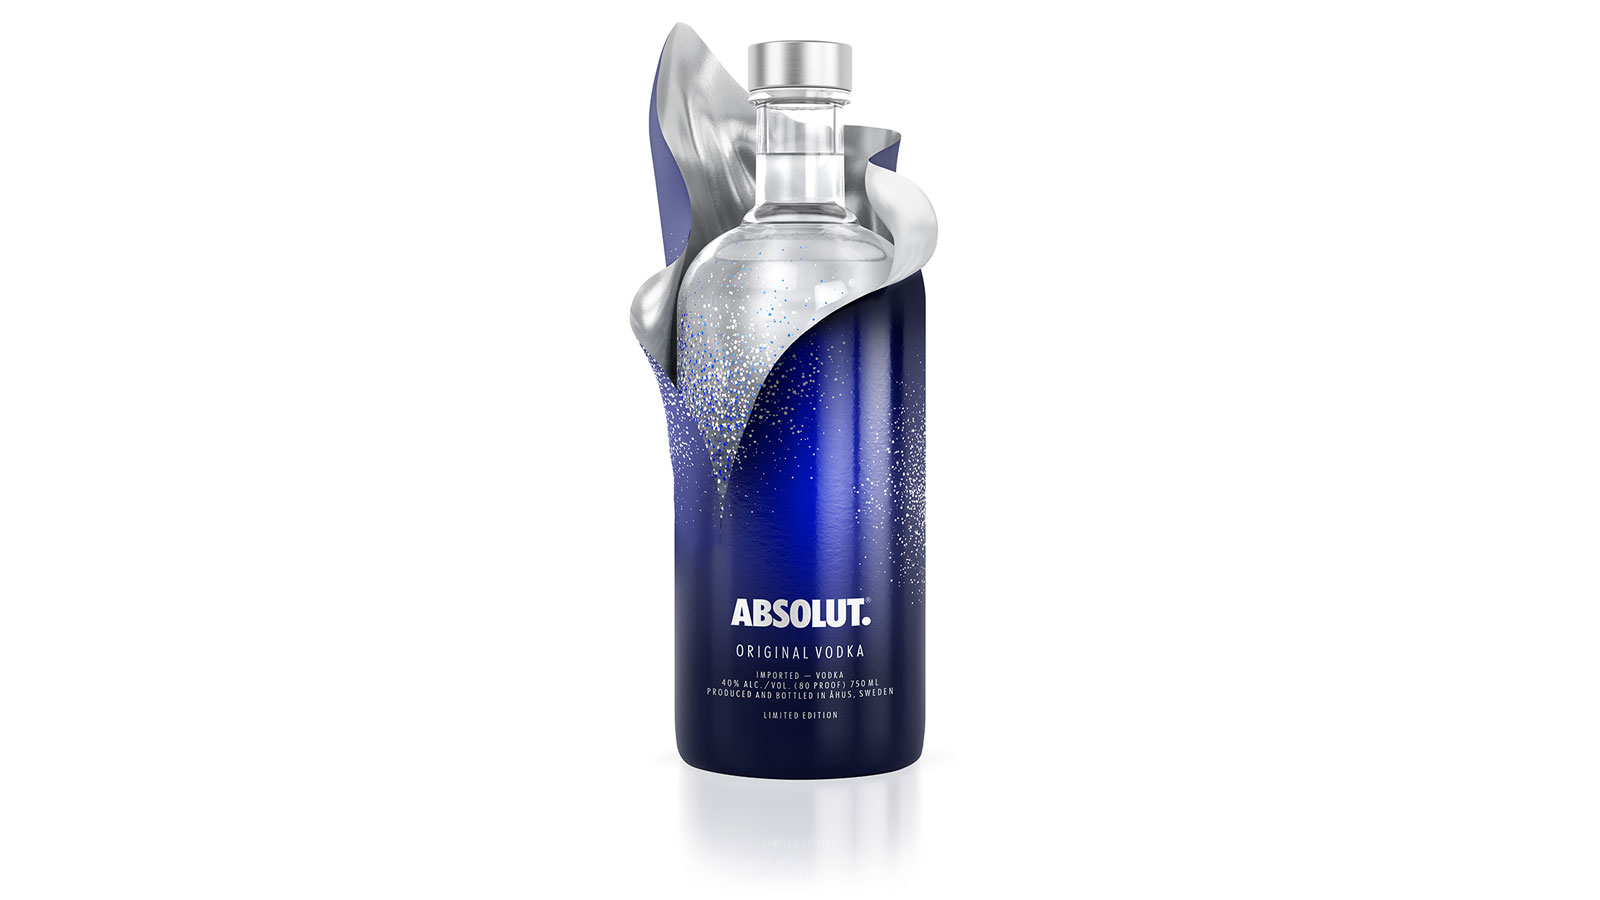 Uncover the possibilities of the night with Absolut's new limited edition bottle